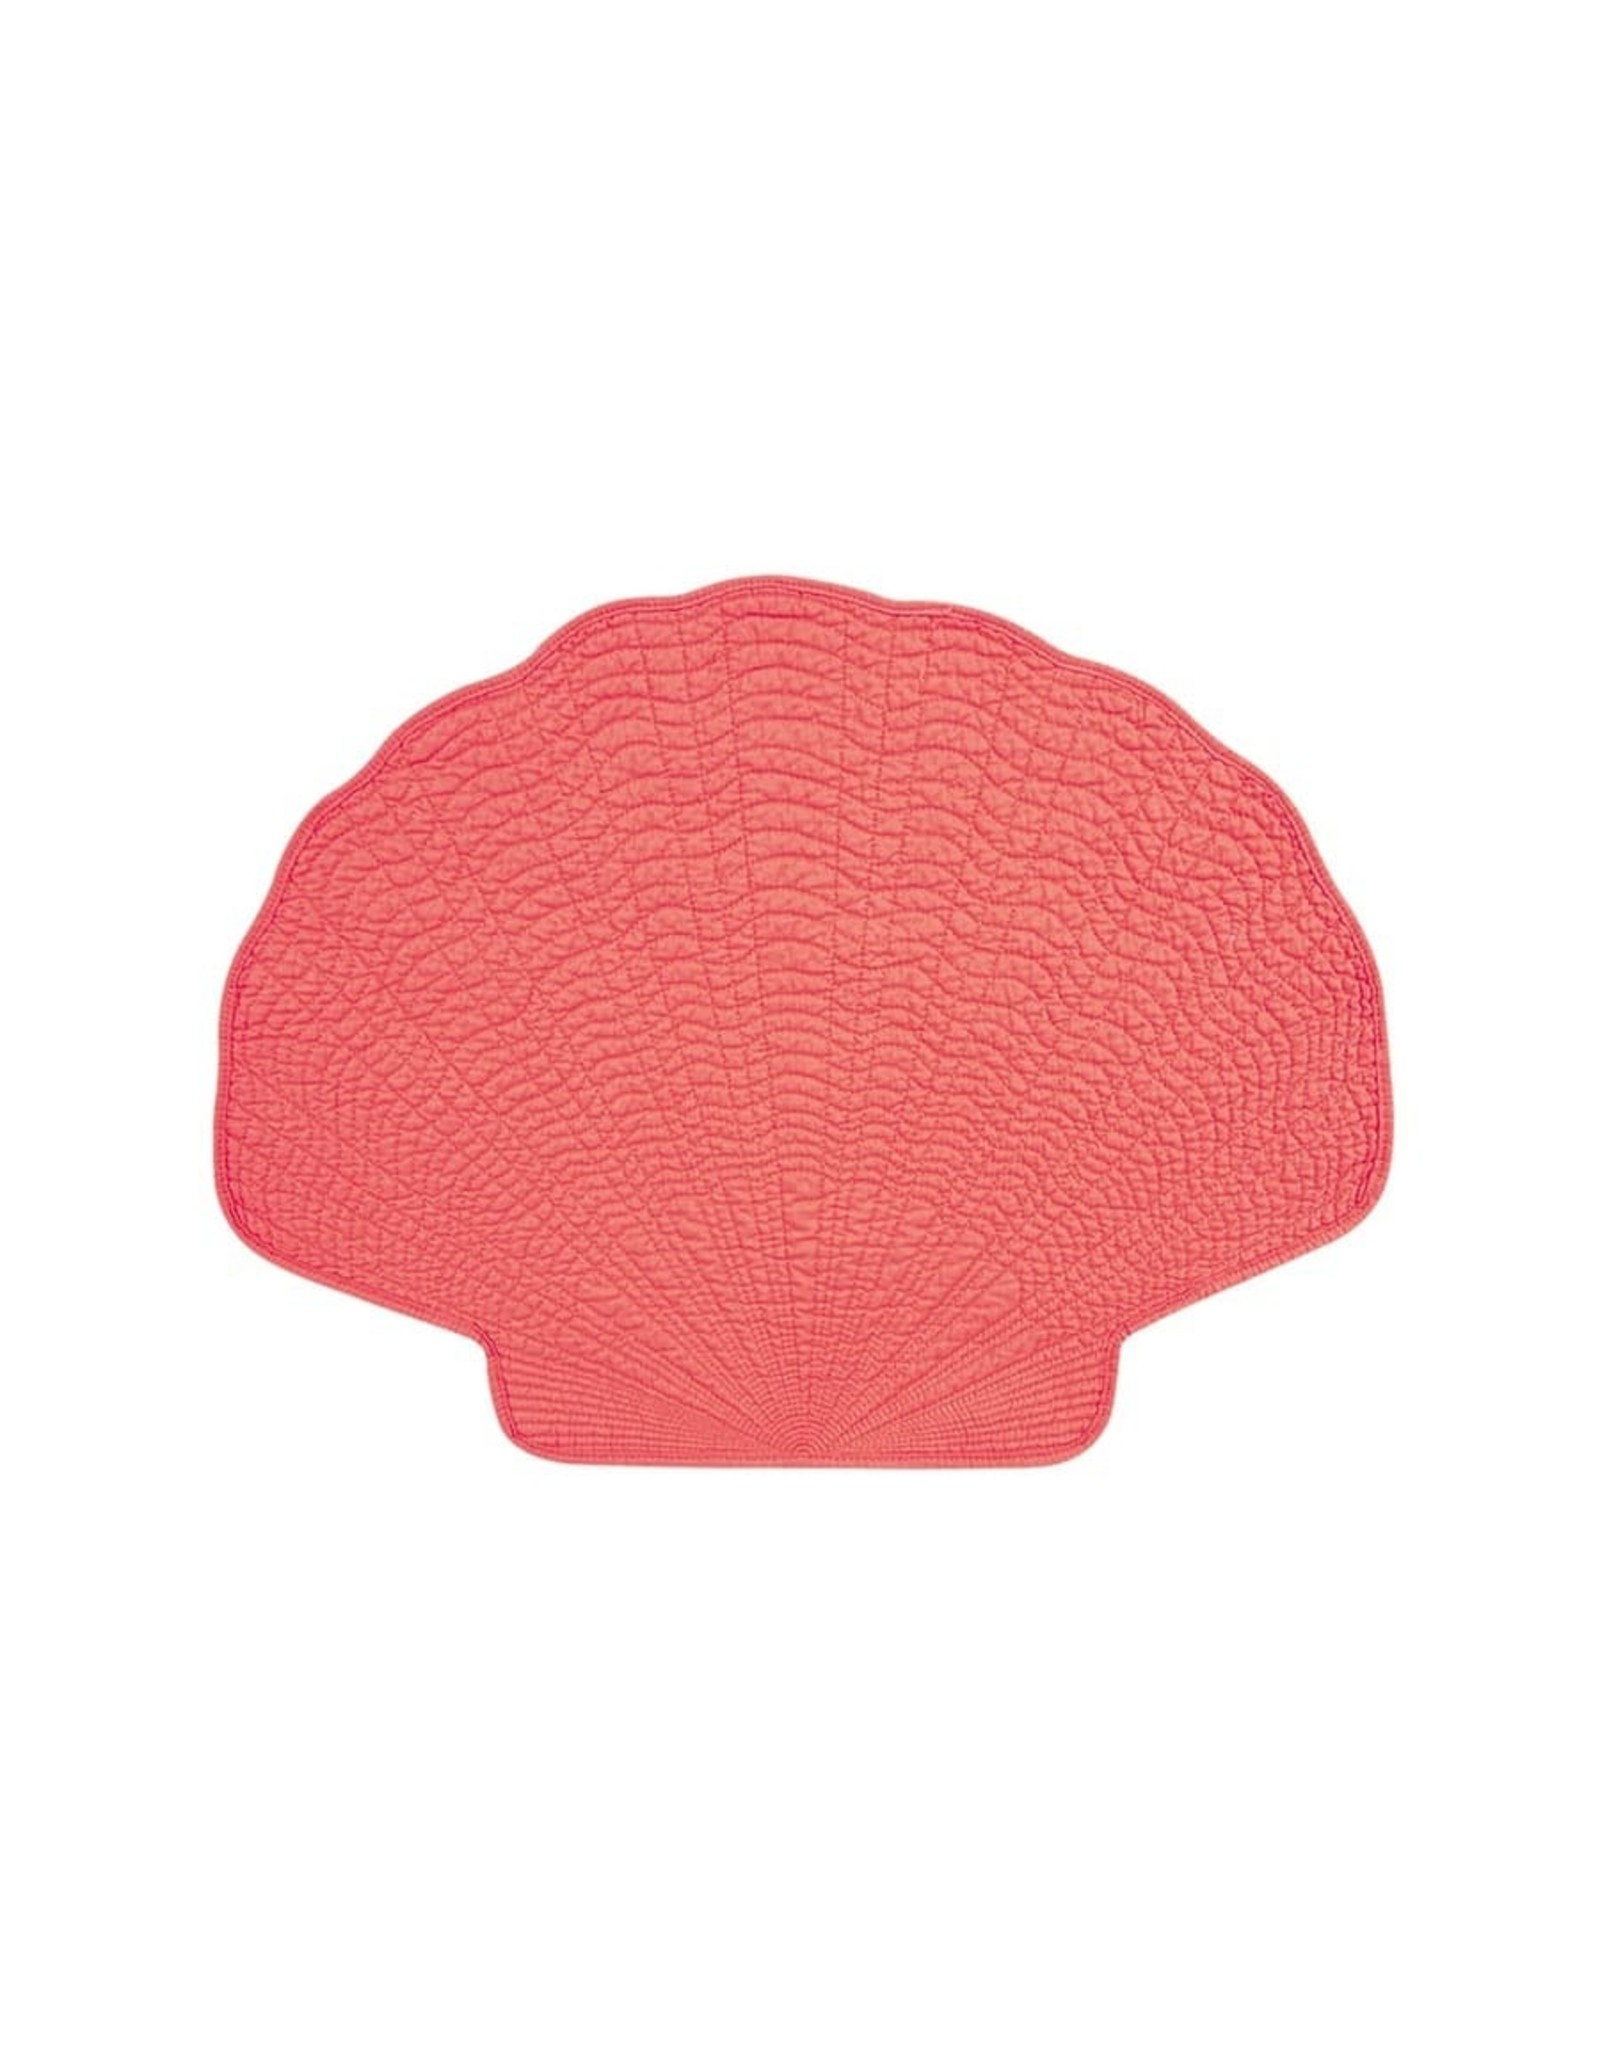 C&F Enterprise Shell Placemet Coral